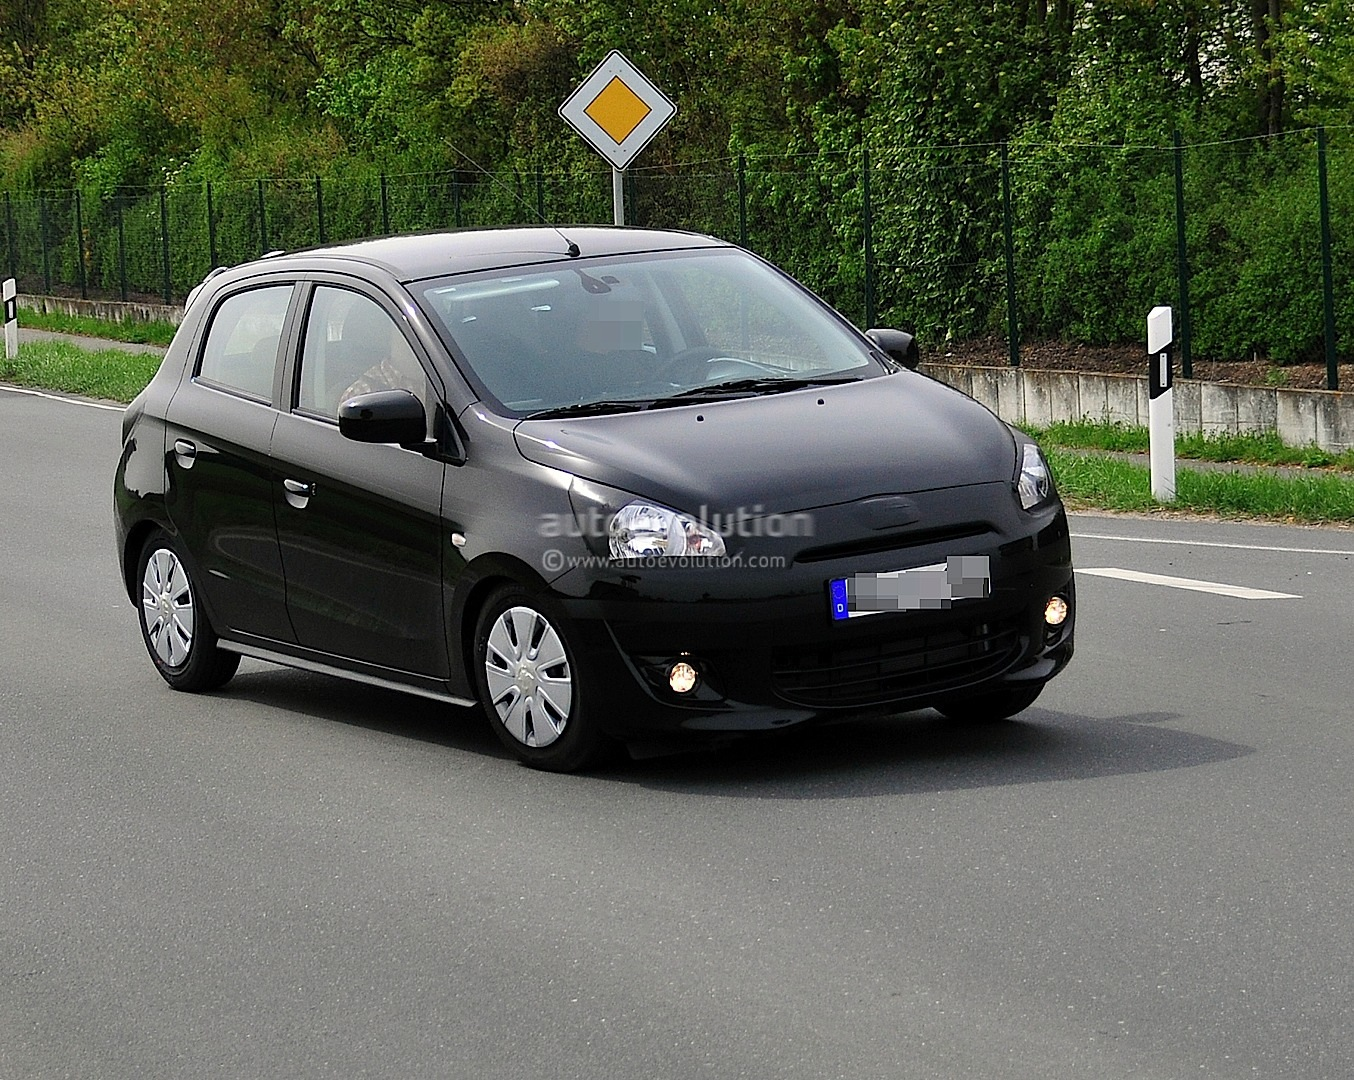 Mitsubishi Mirage 2010 photo - 2